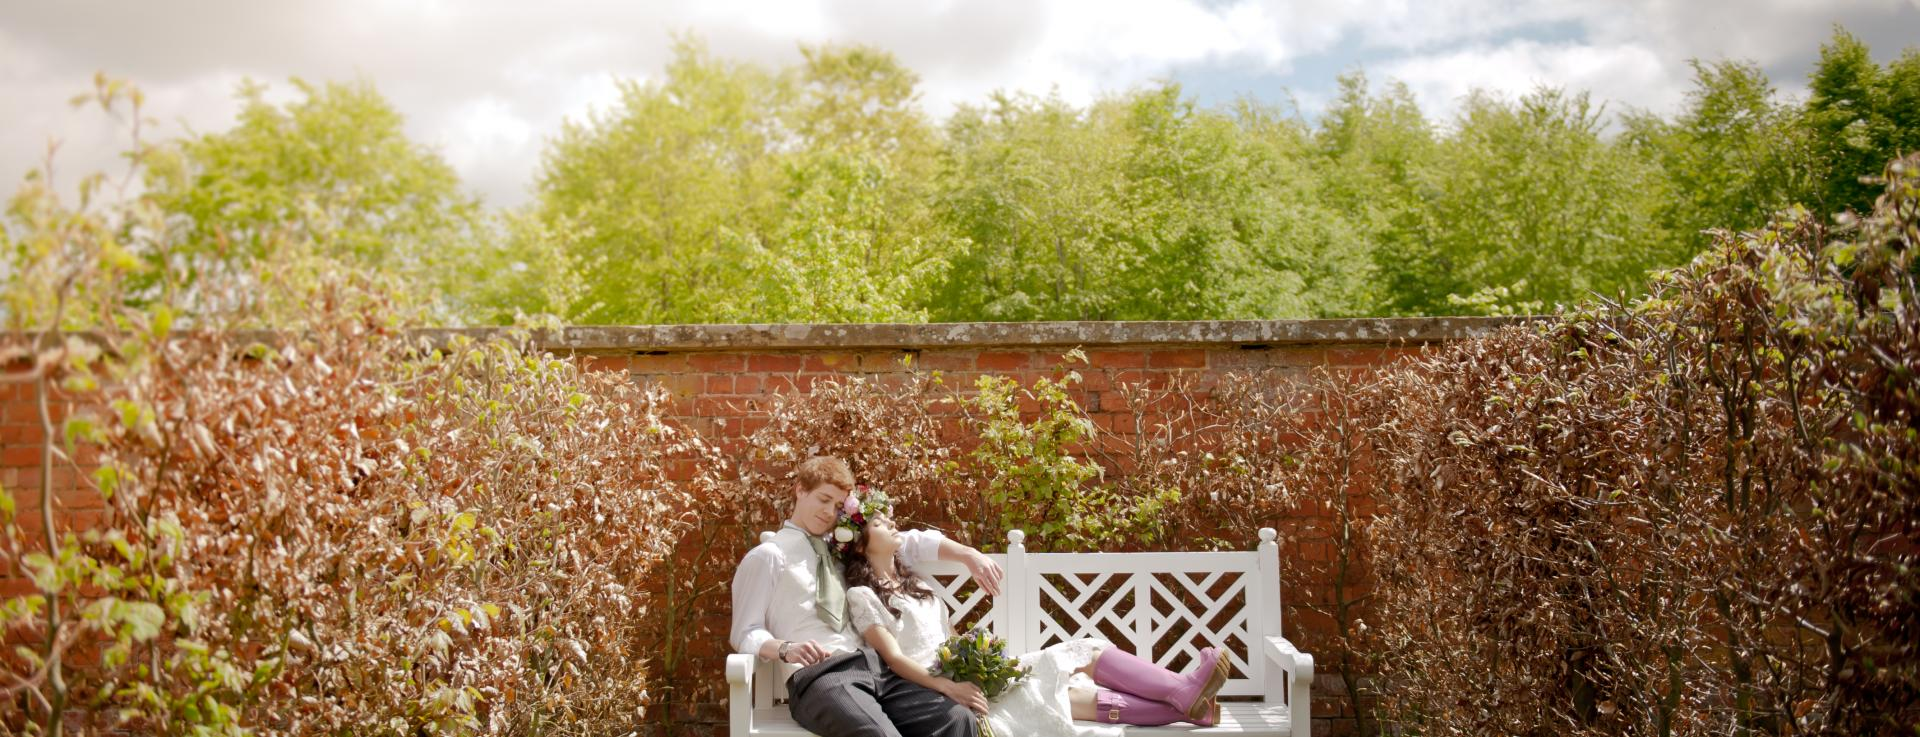 Wedding at The Colloquy, Herefordshire